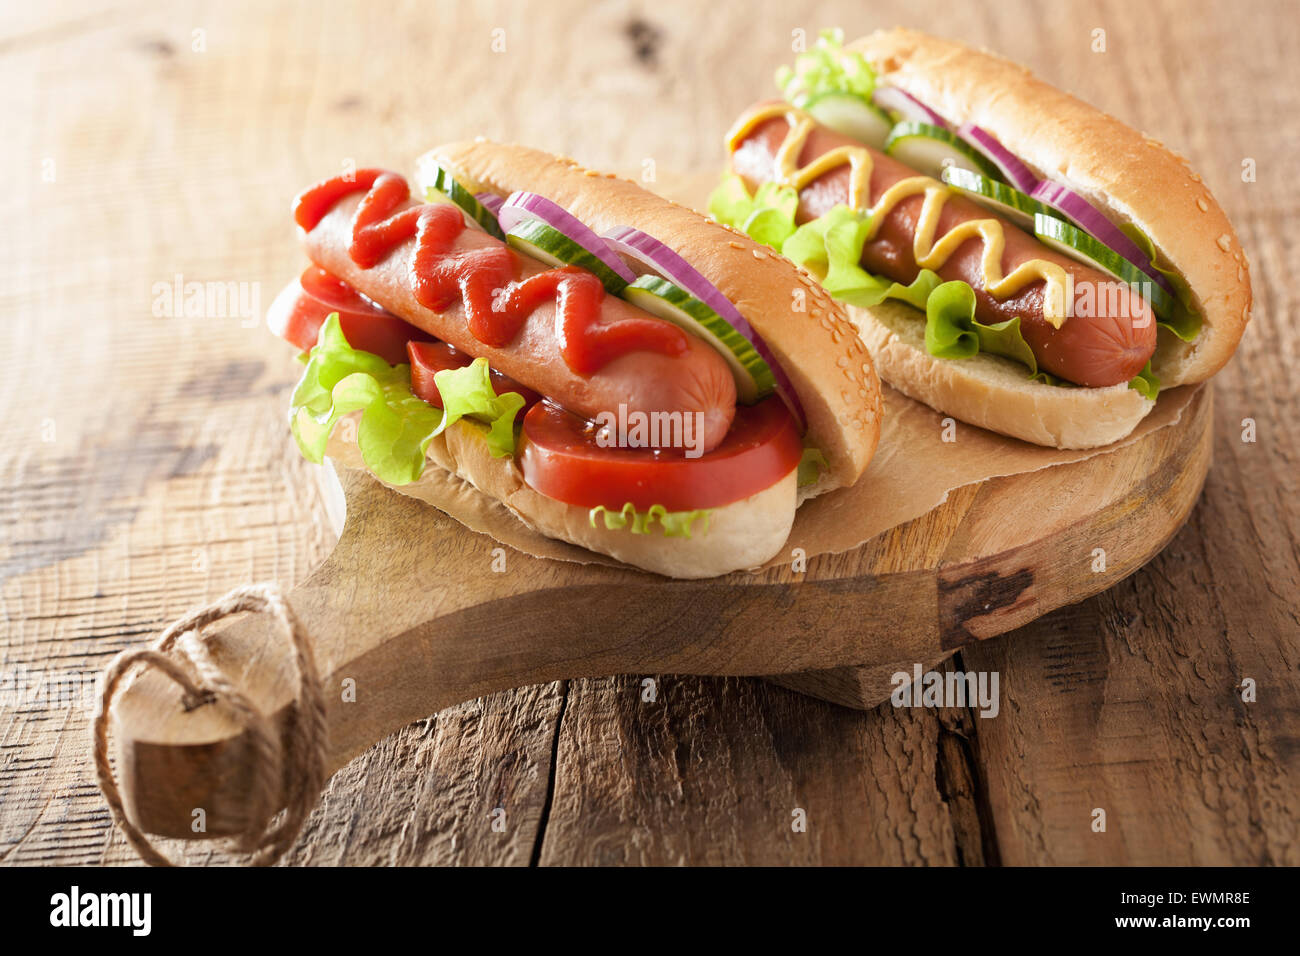 hotdog with ketchup mustard and vegetables - Stock Image